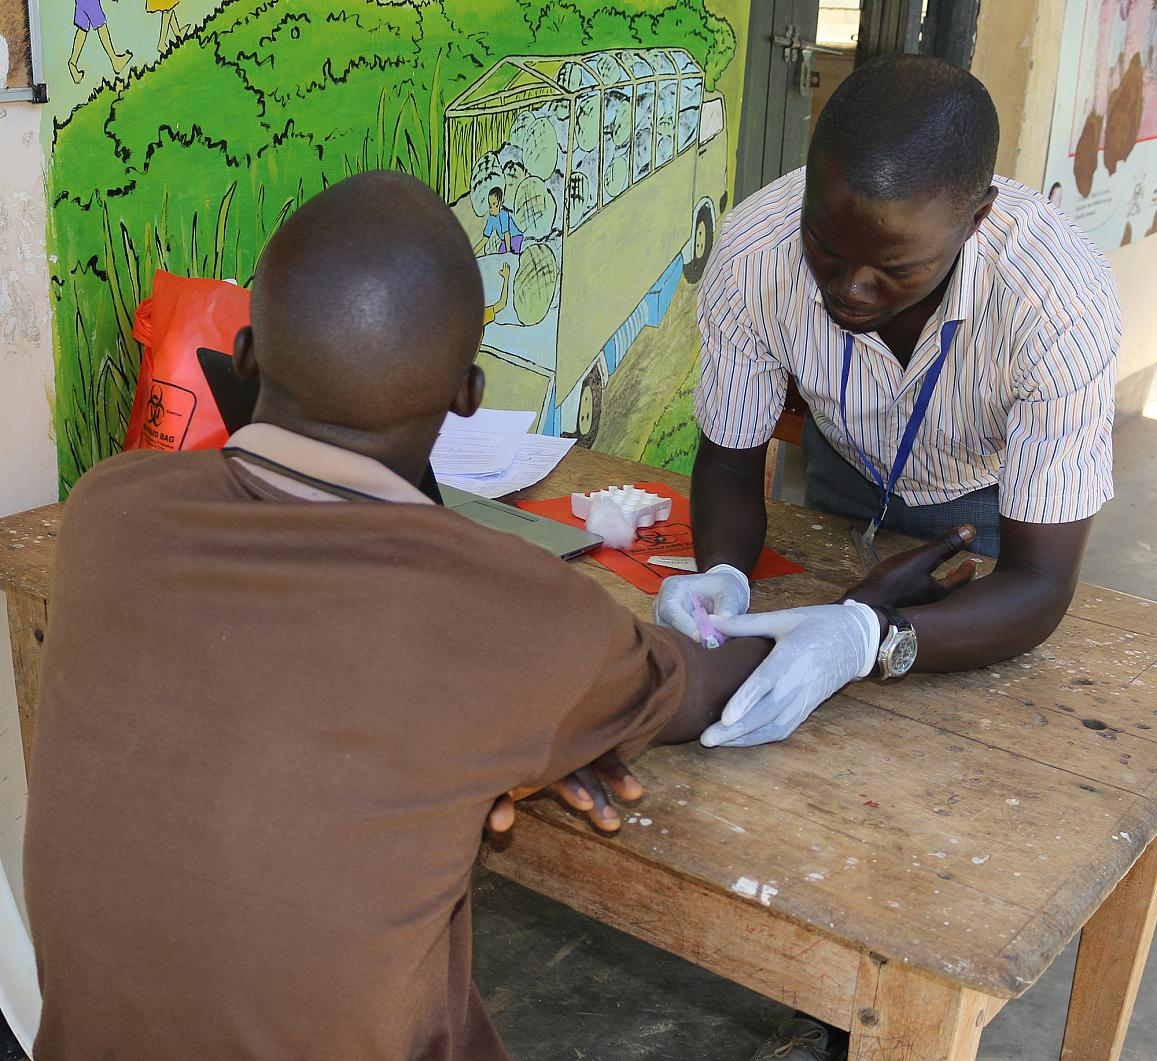 A research assistant draws blood for HIV testing from a participant in the Rakai Community Cohort Study.